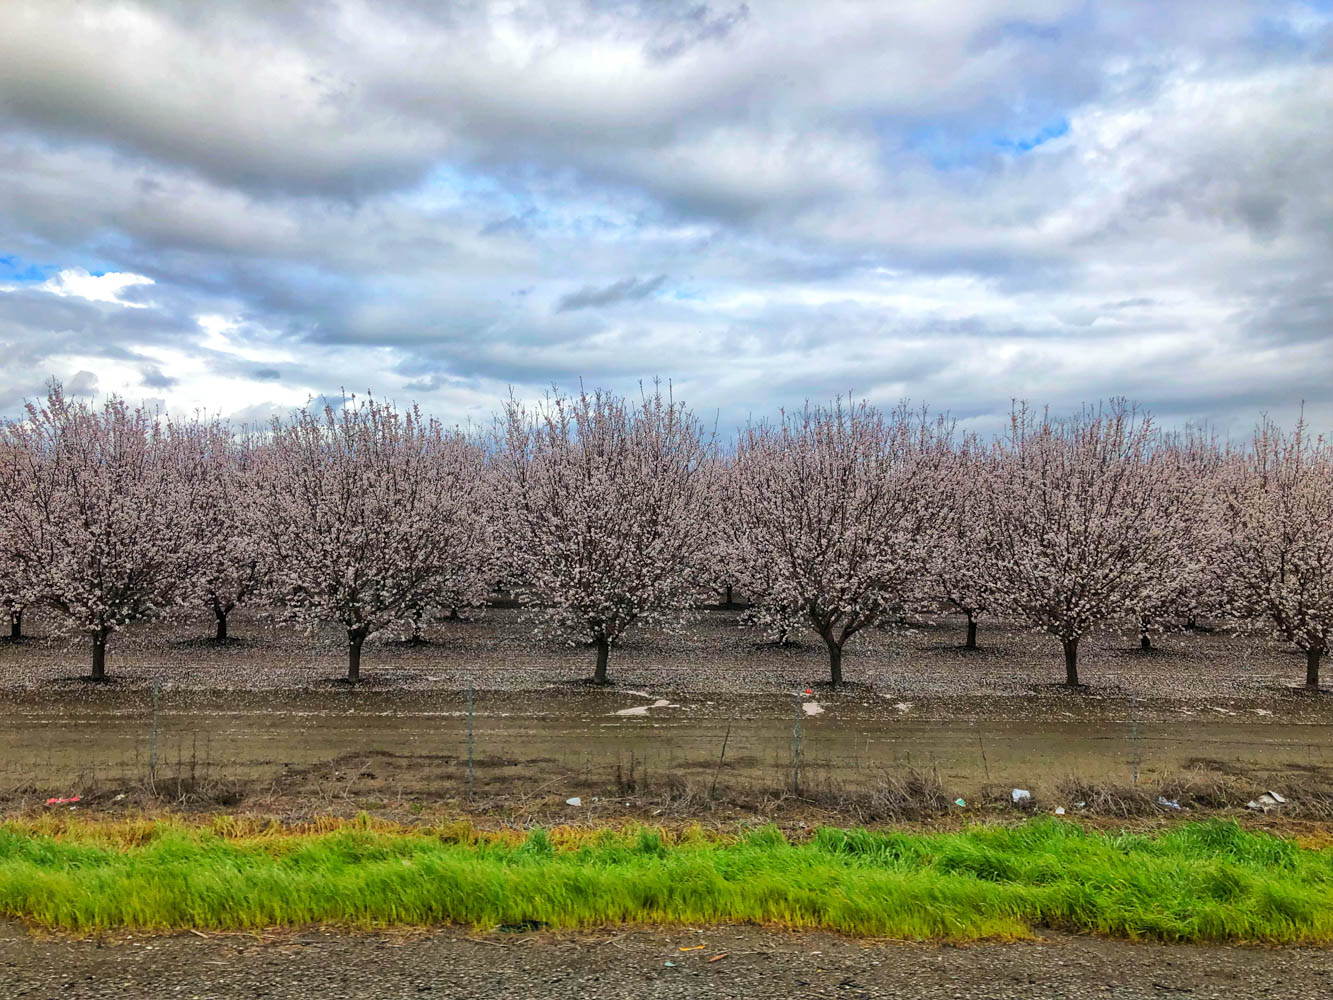 Just as we were marveling at the pastoral beauty of the miles and miles of almond trees in bloom in Yolo, an aircraft shot from around a corner spraying a torrent of pesticides over them. This is right by a residential area and a school... I know there has been concerns and debates about this situation and that it has been the focus of recent media scrutiny because of the large amount of water required to grow almonds (12 liters per almond kernel!!), but to see it happen right in front of your eyes makes you realize firsthand the impact of our increased consumption of almonds (the almond orchard acreage has doubled in the last two decades!). We have definitely cut back on our almond consumption and focus more on hemp seeds